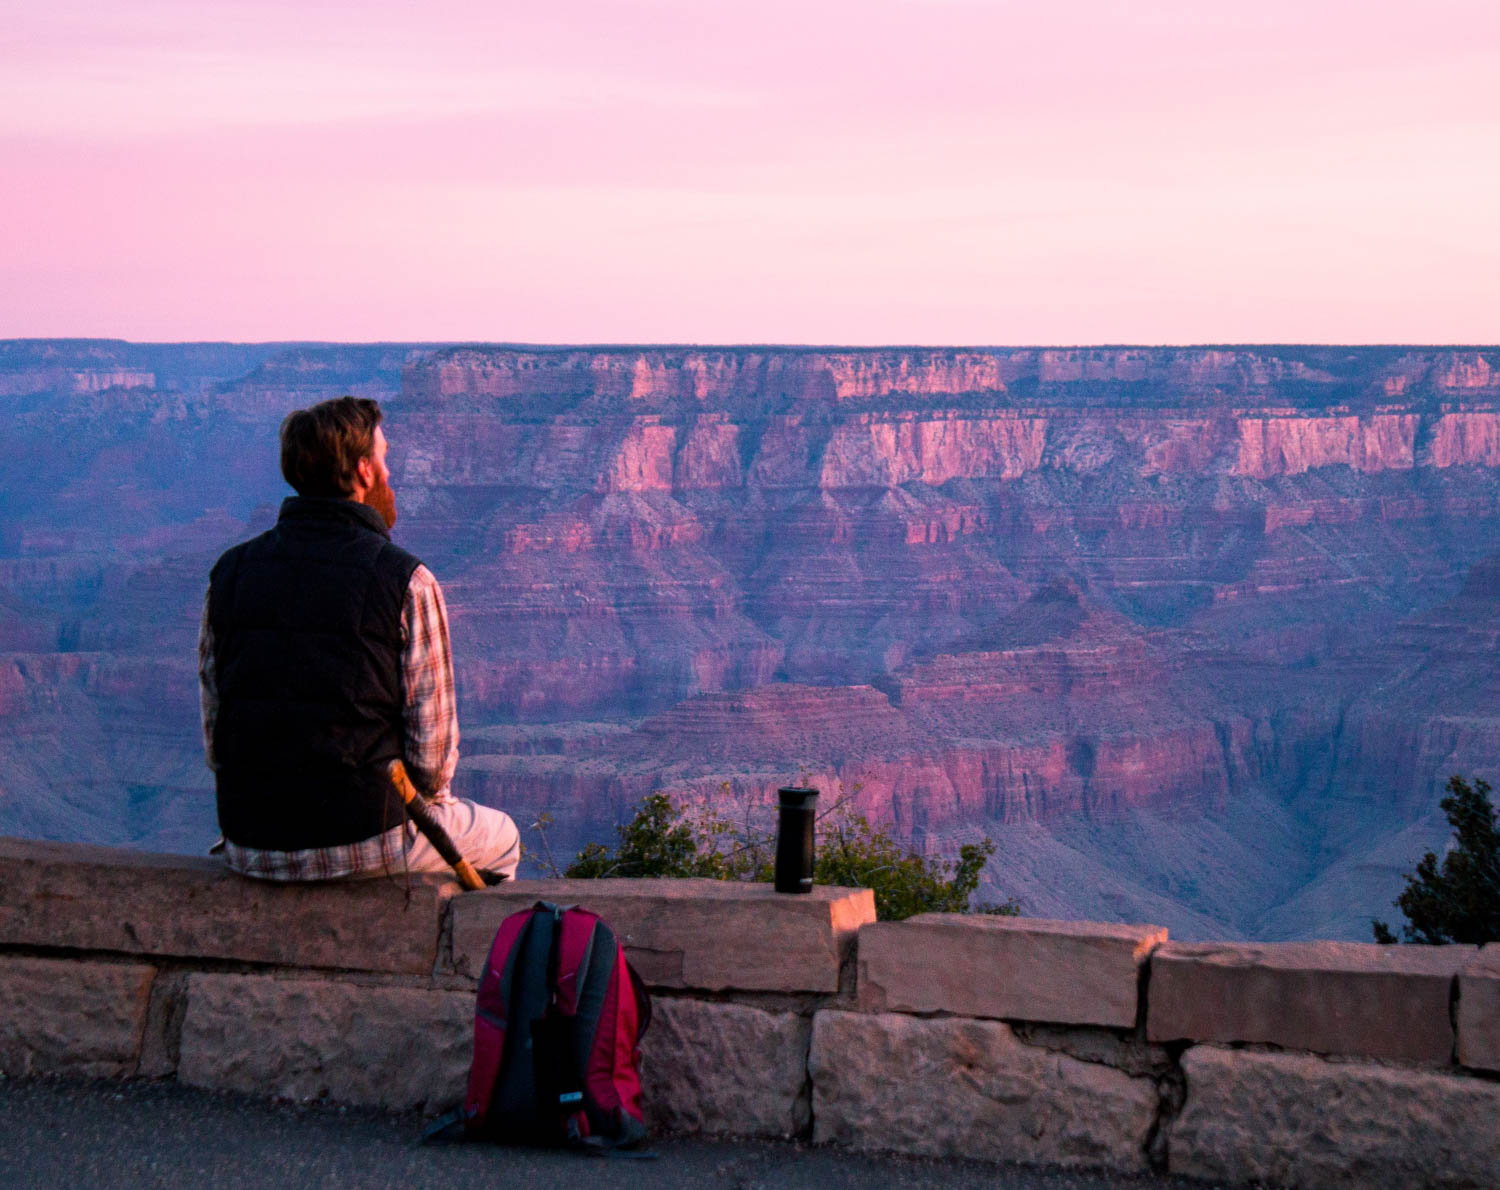 hiker rests on edge of platform as pink and purple sunset illuminates the grand canyon